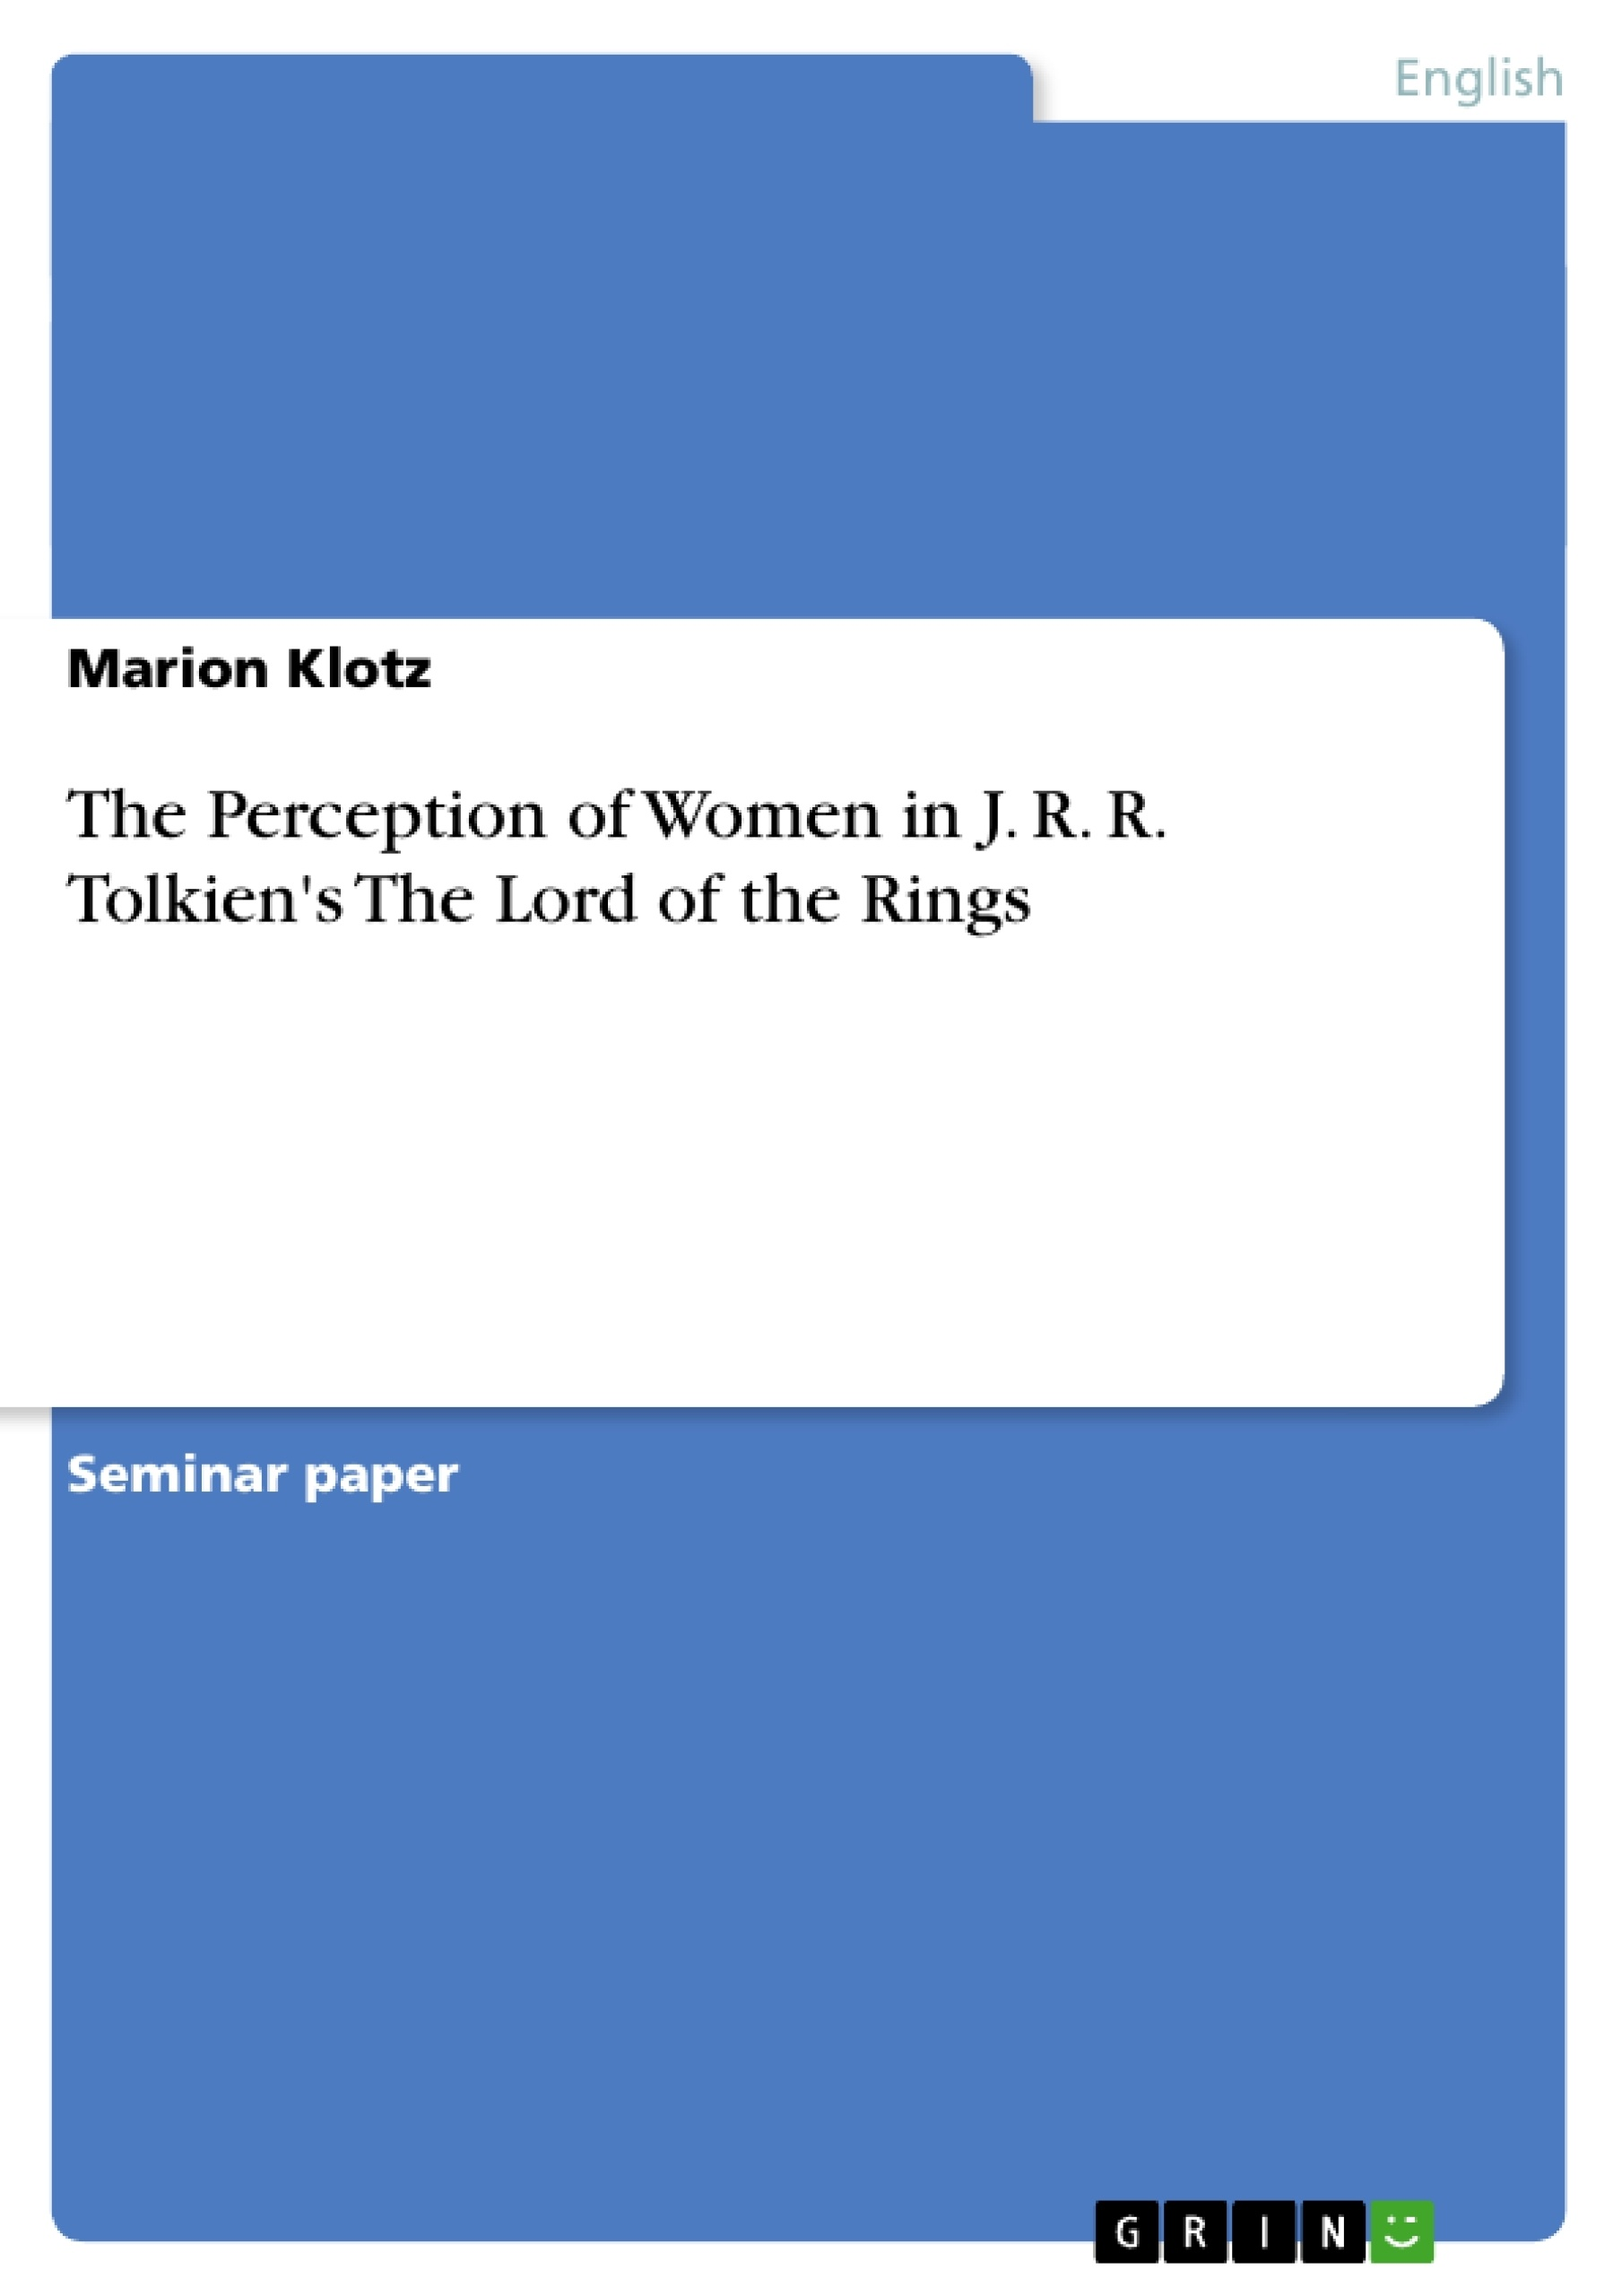 Title: The Perception of Women in J. R. R. Tolkien's The Lord of the Rings